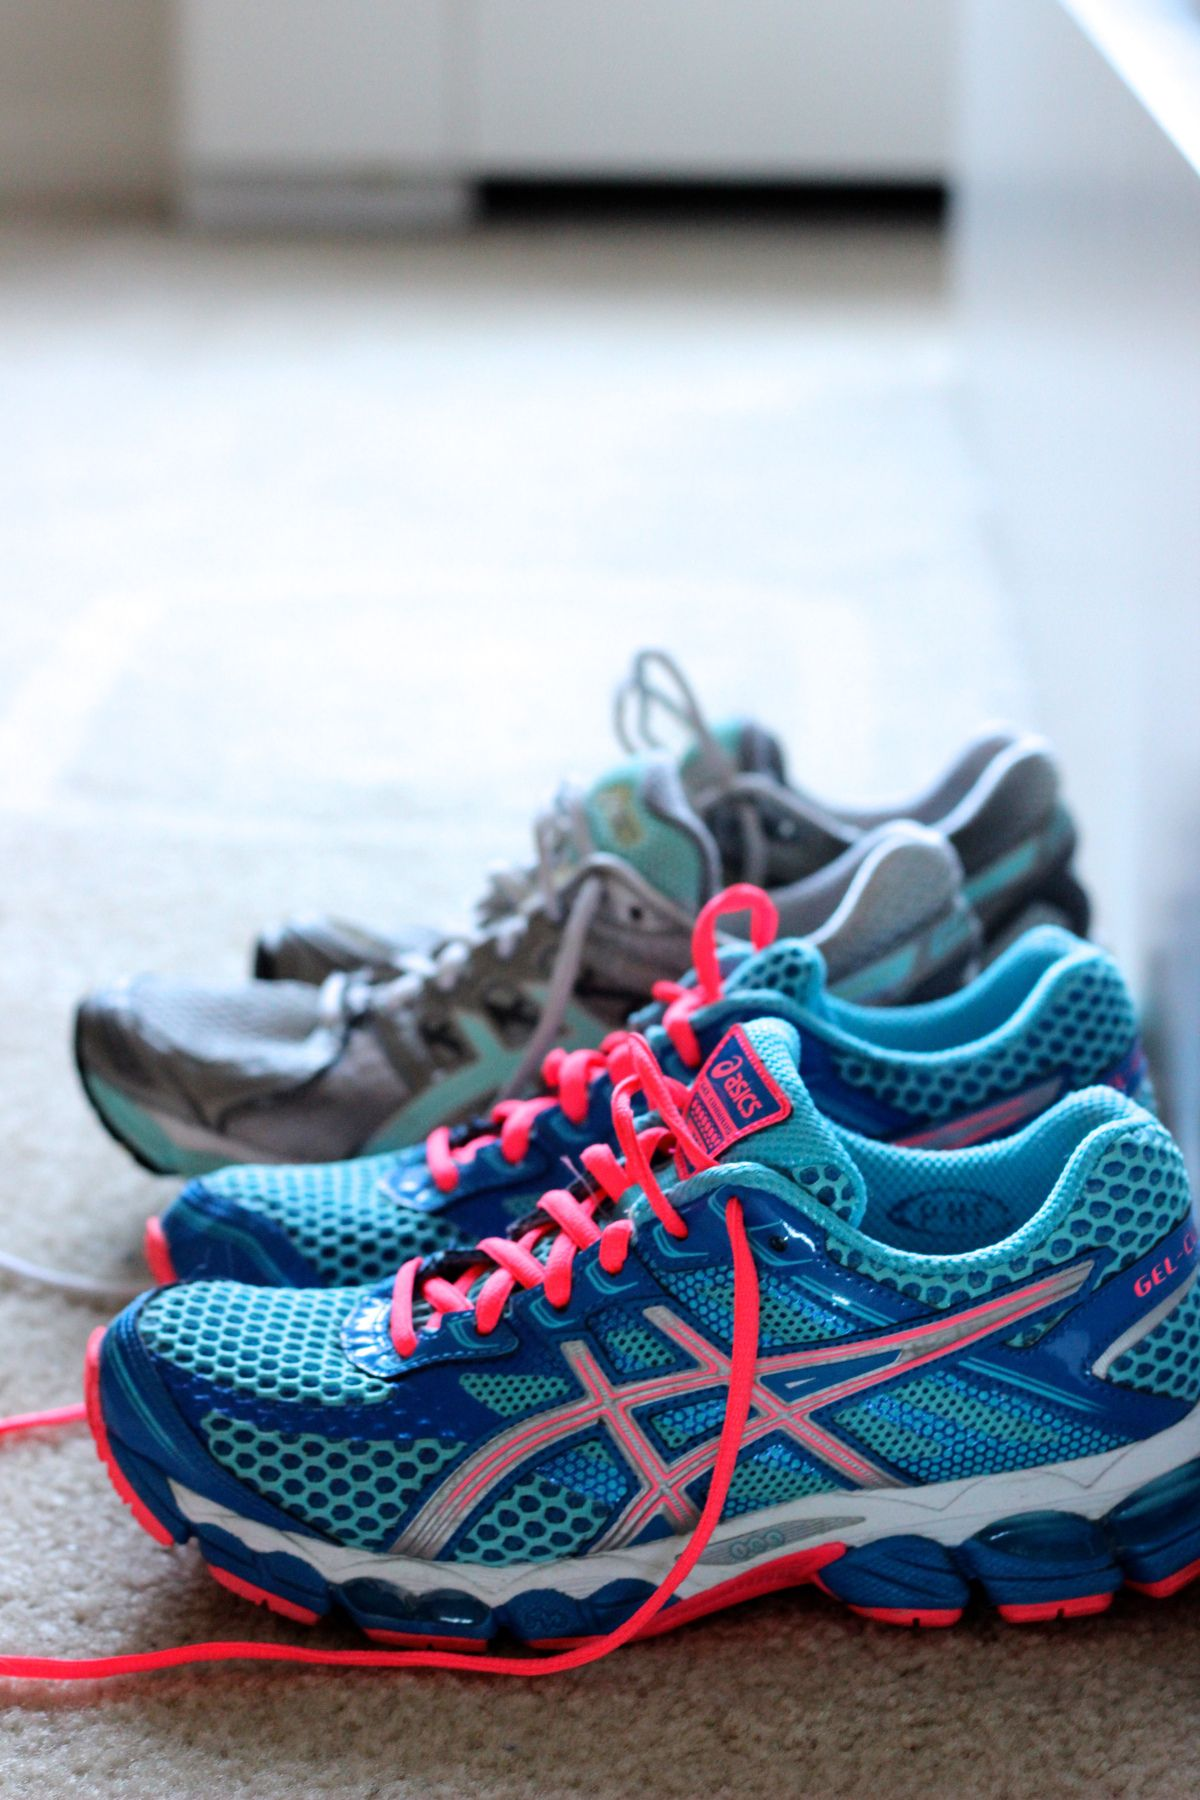 Asics Running Shoes - I have those blue ones! (and a different purple pair